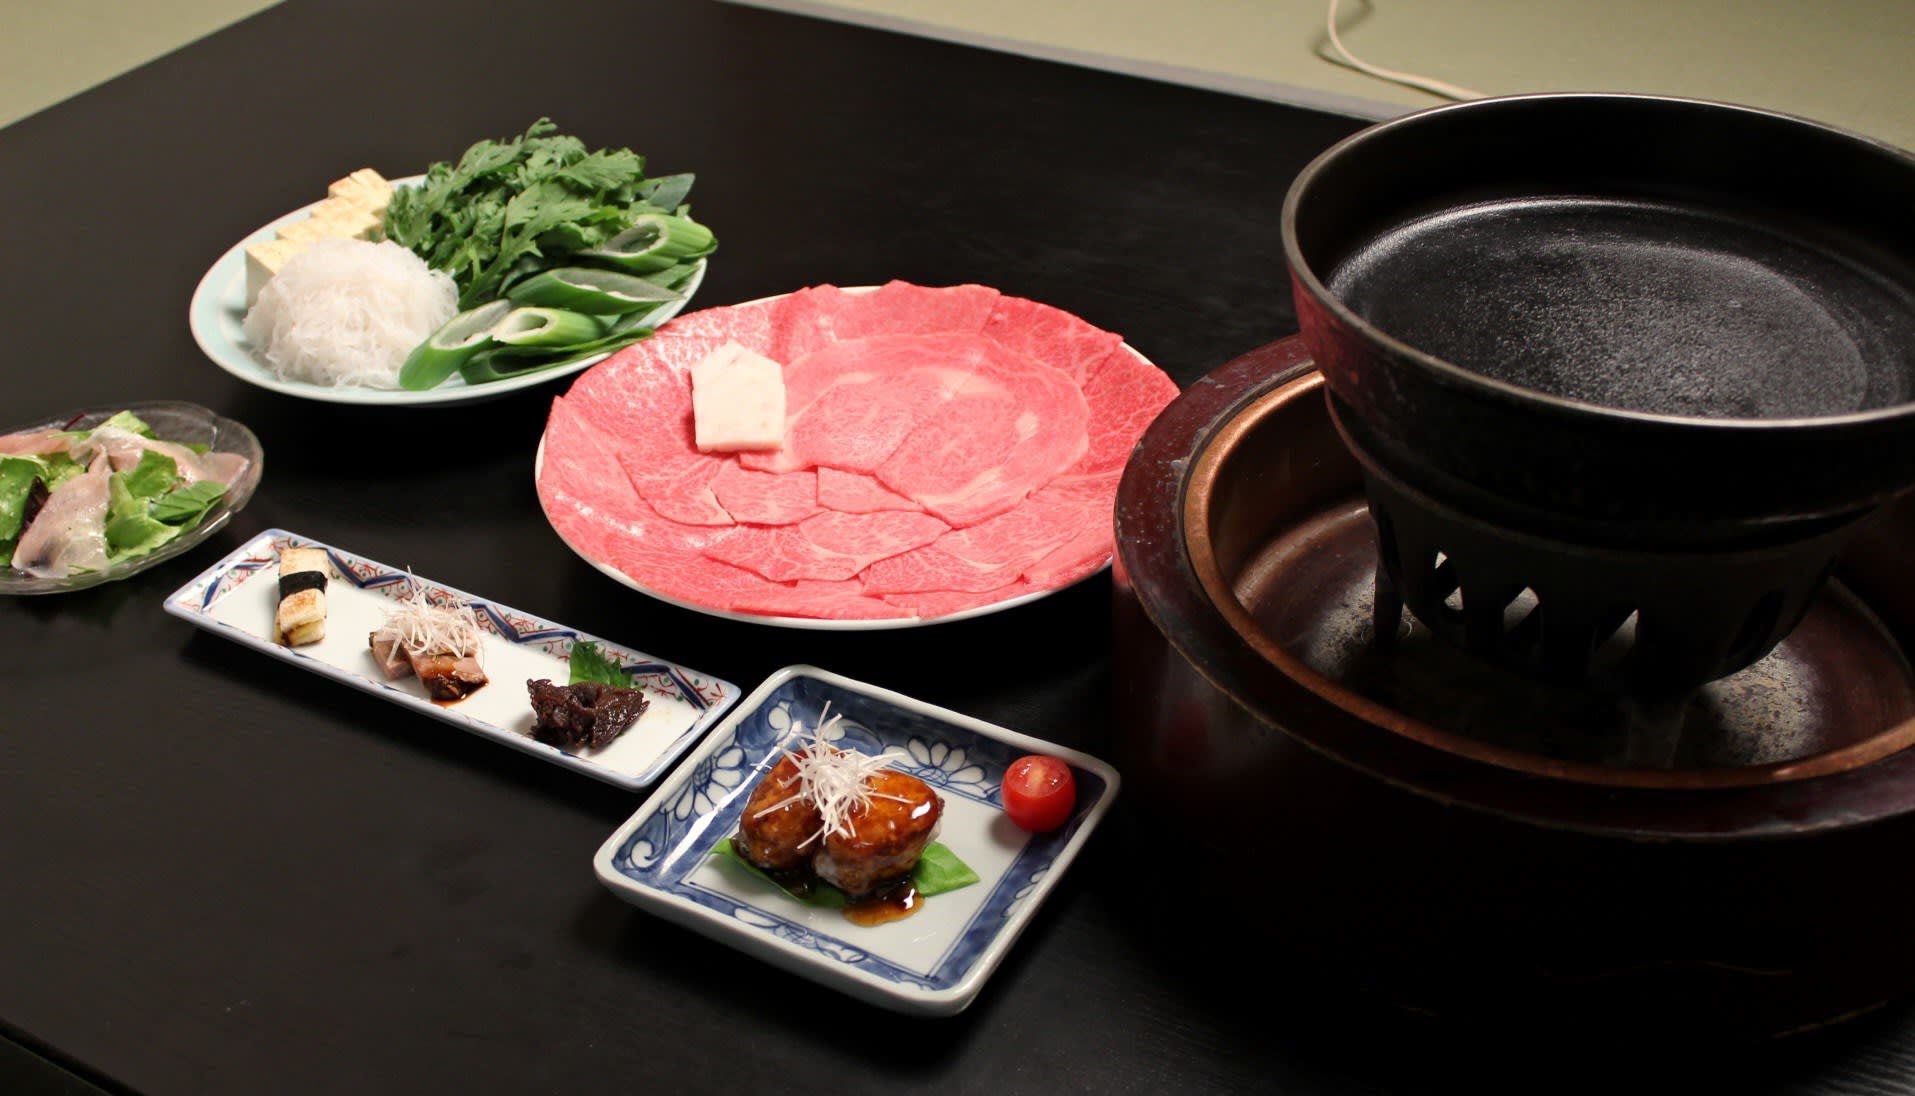 Japanese wagyu nearing record price - Nikkei Asian Review